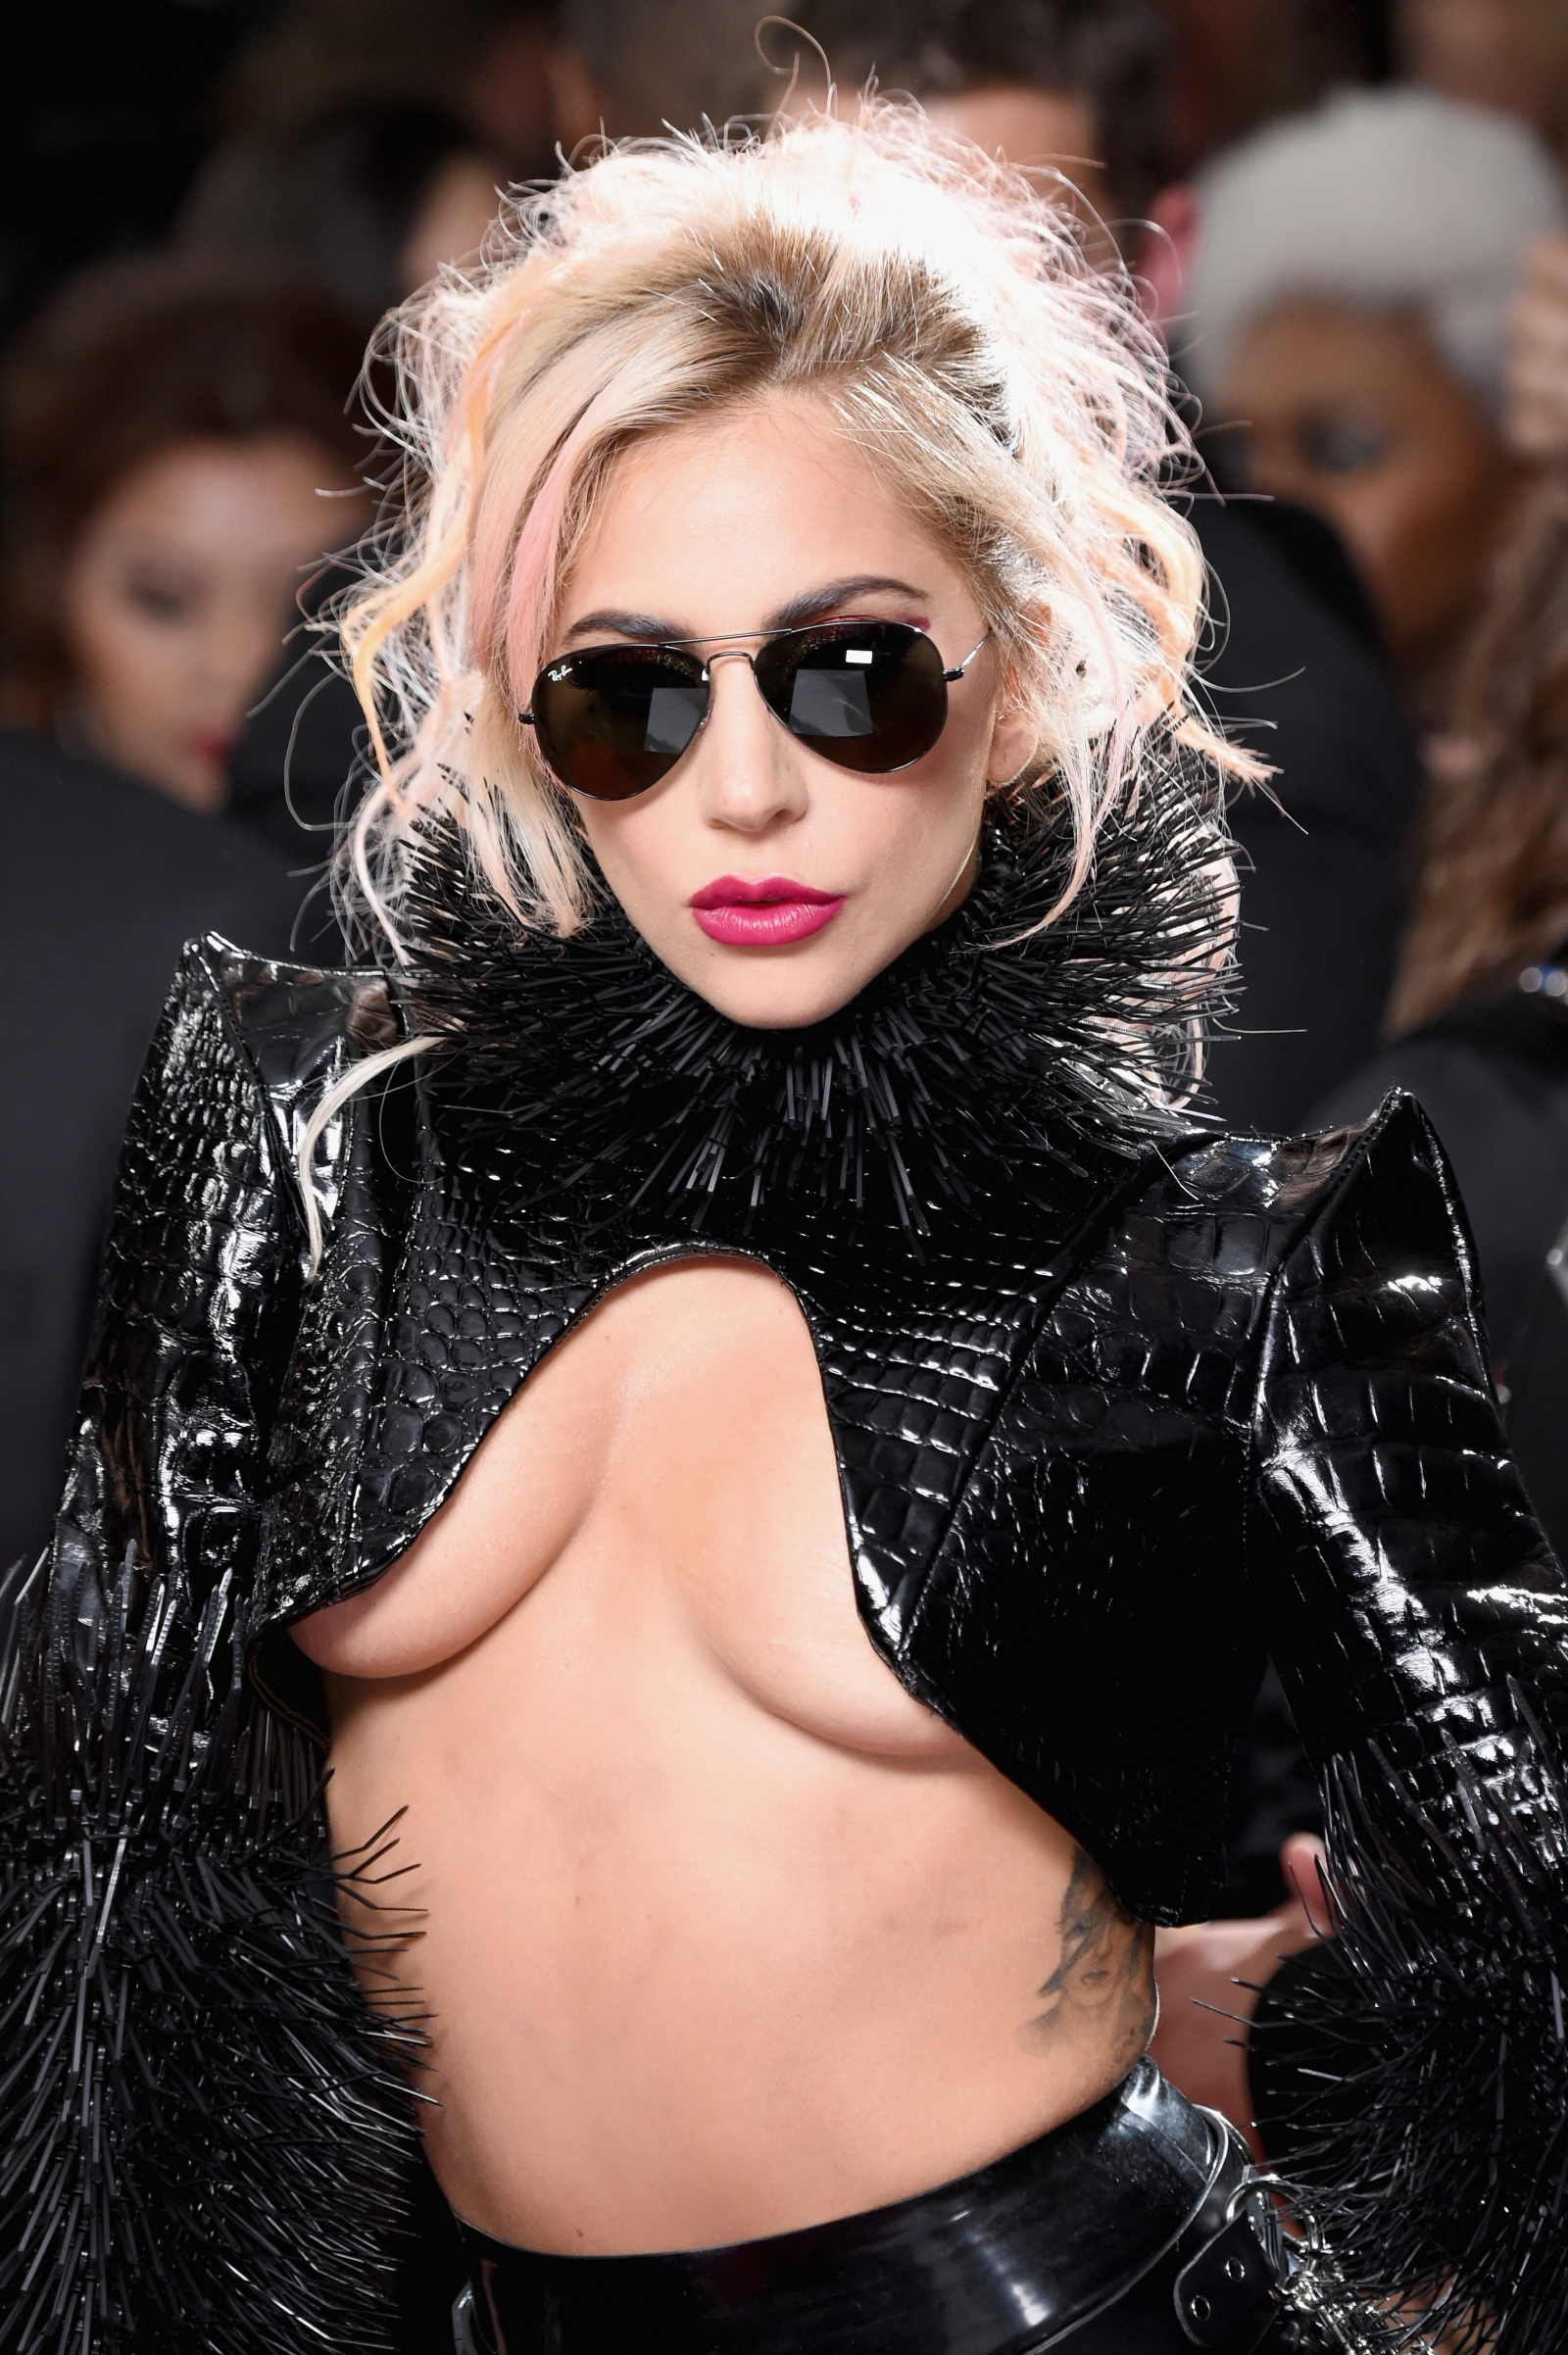 Braless Lady Gaga suffers embarrassing wardrobe malfunction in see-through bodysuit